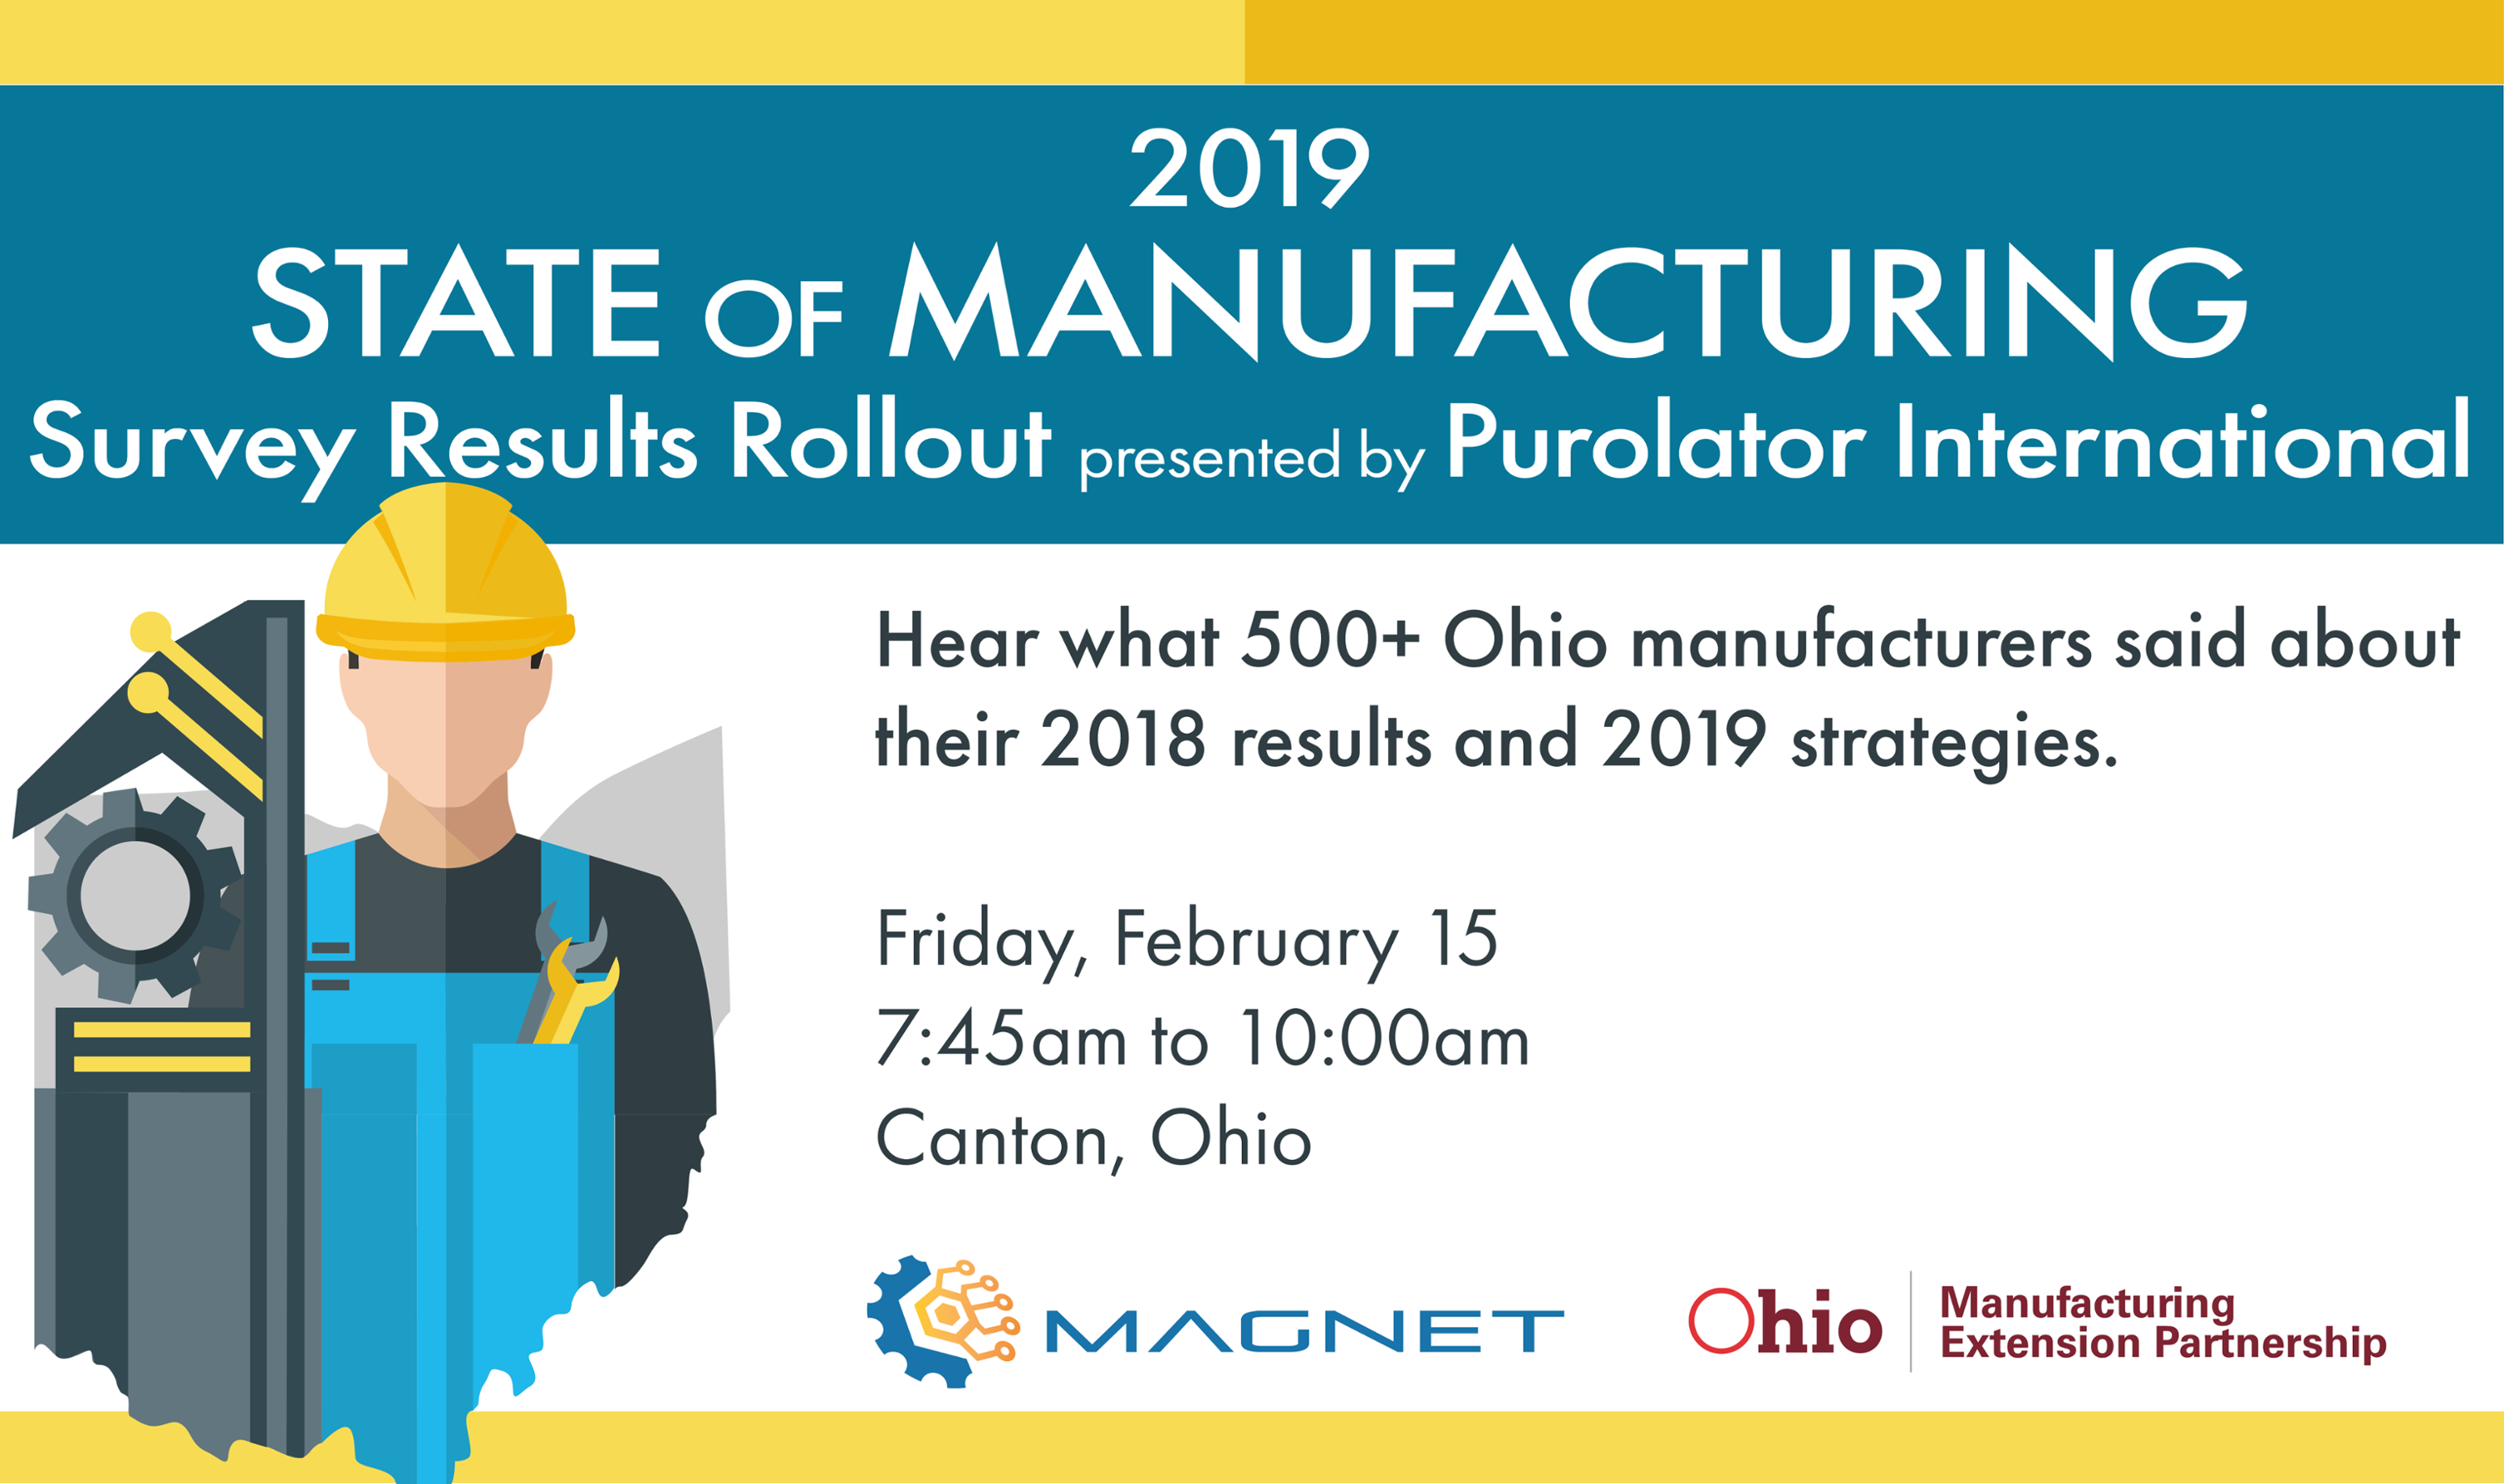 State of Manufacturing Survey Results Rollout Feb 15